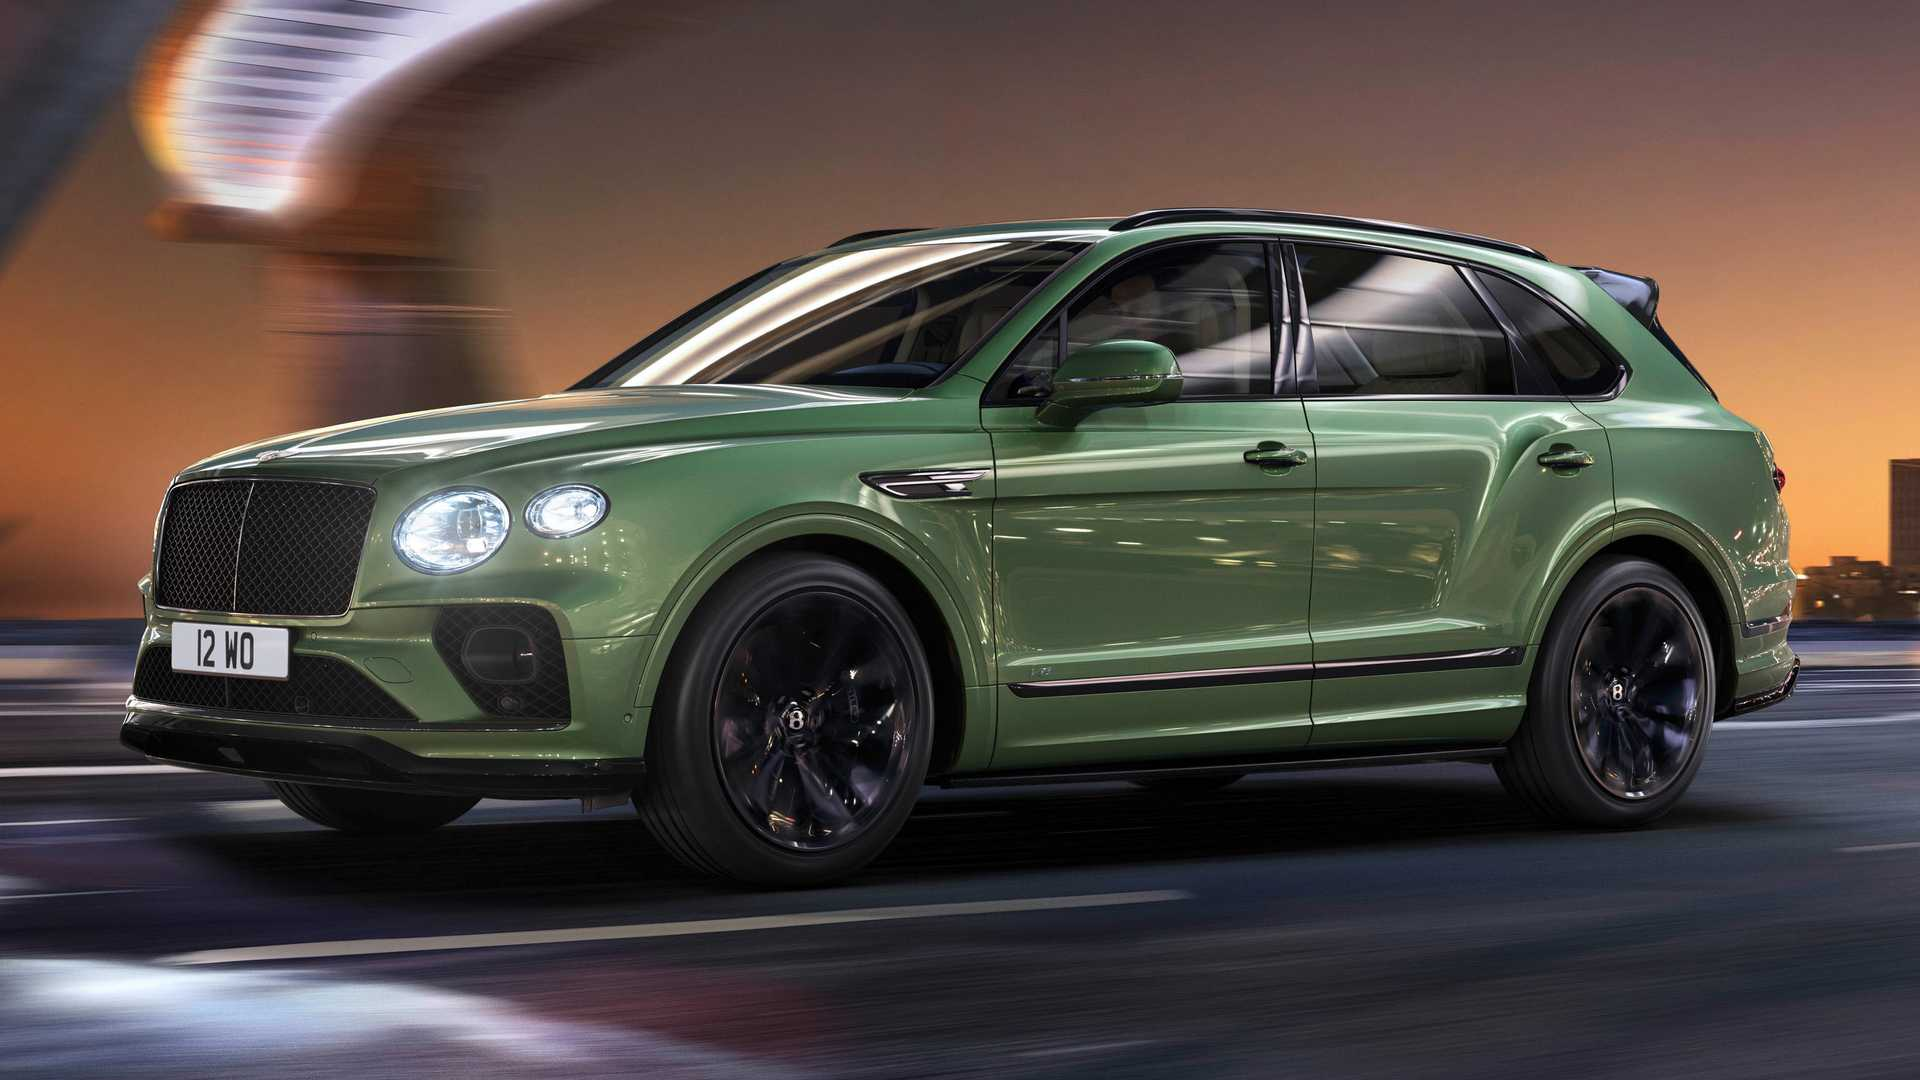 2021 Bentley Bentayga Debuts With New Exterior Look Tweaked Interior